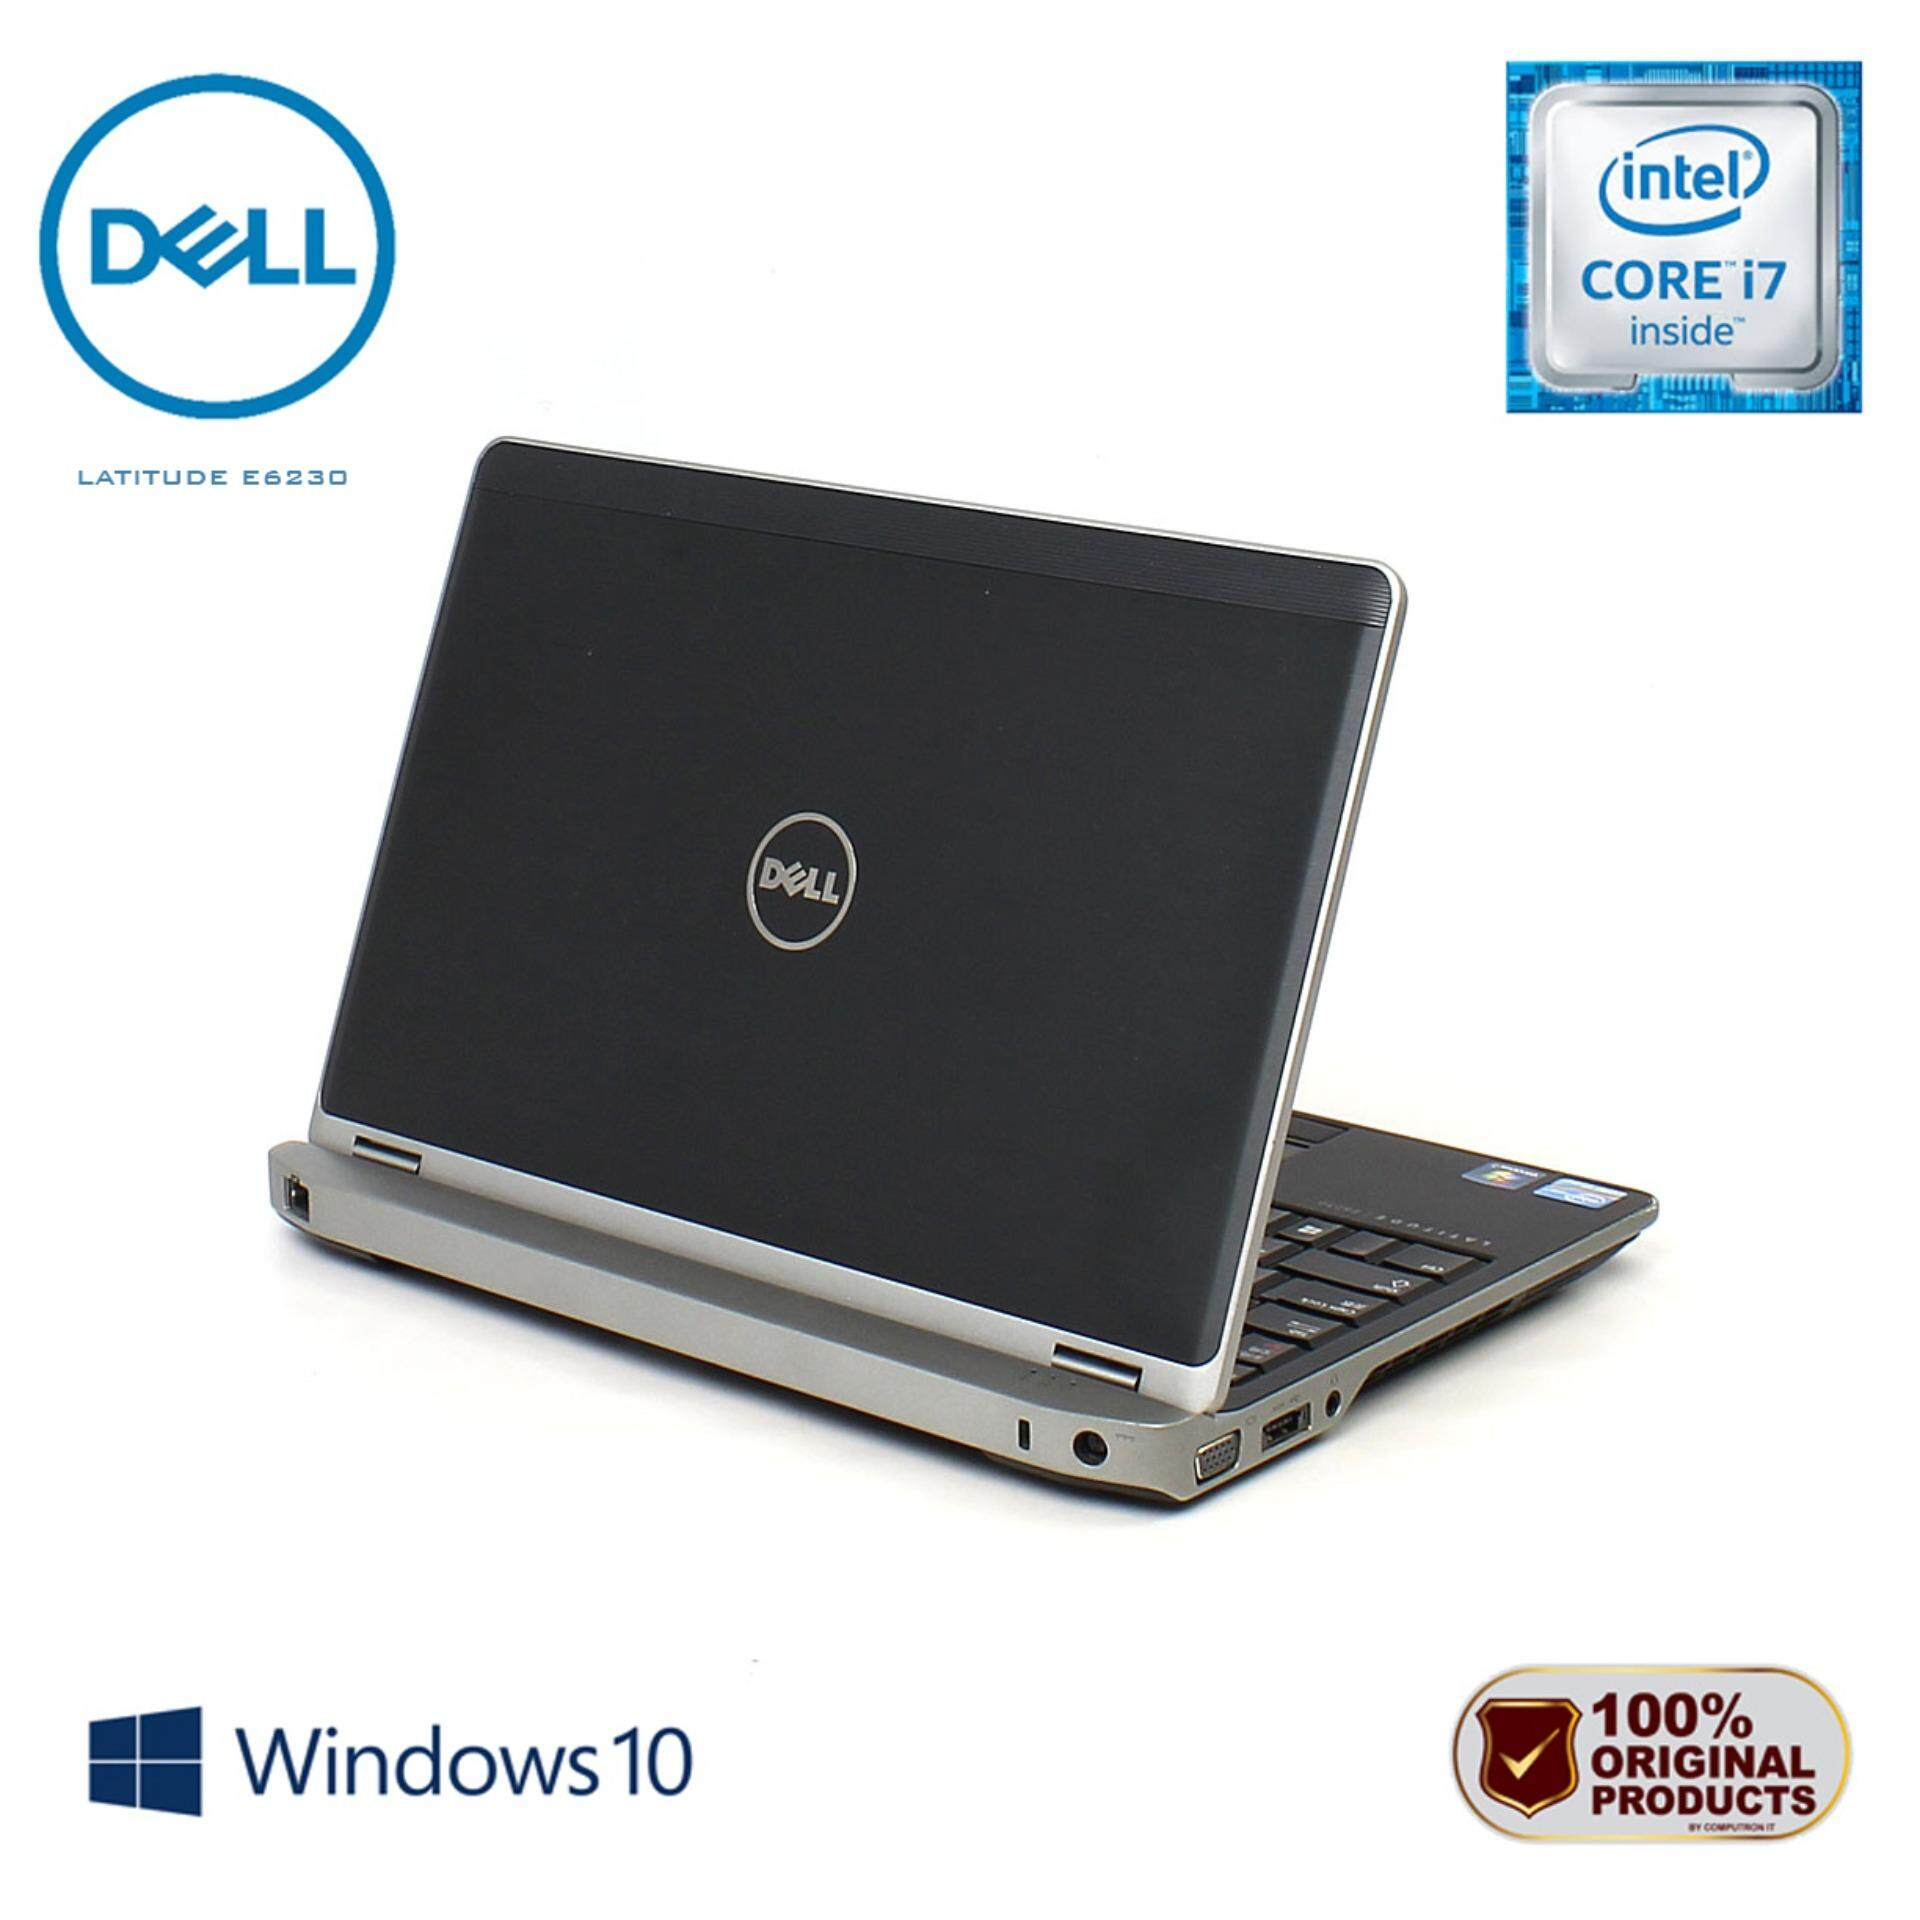 DELL LATITUDE E6230 CORE I7 PROCESSOR | 12.5-INCH [SLIM DESIGN] Malaysia